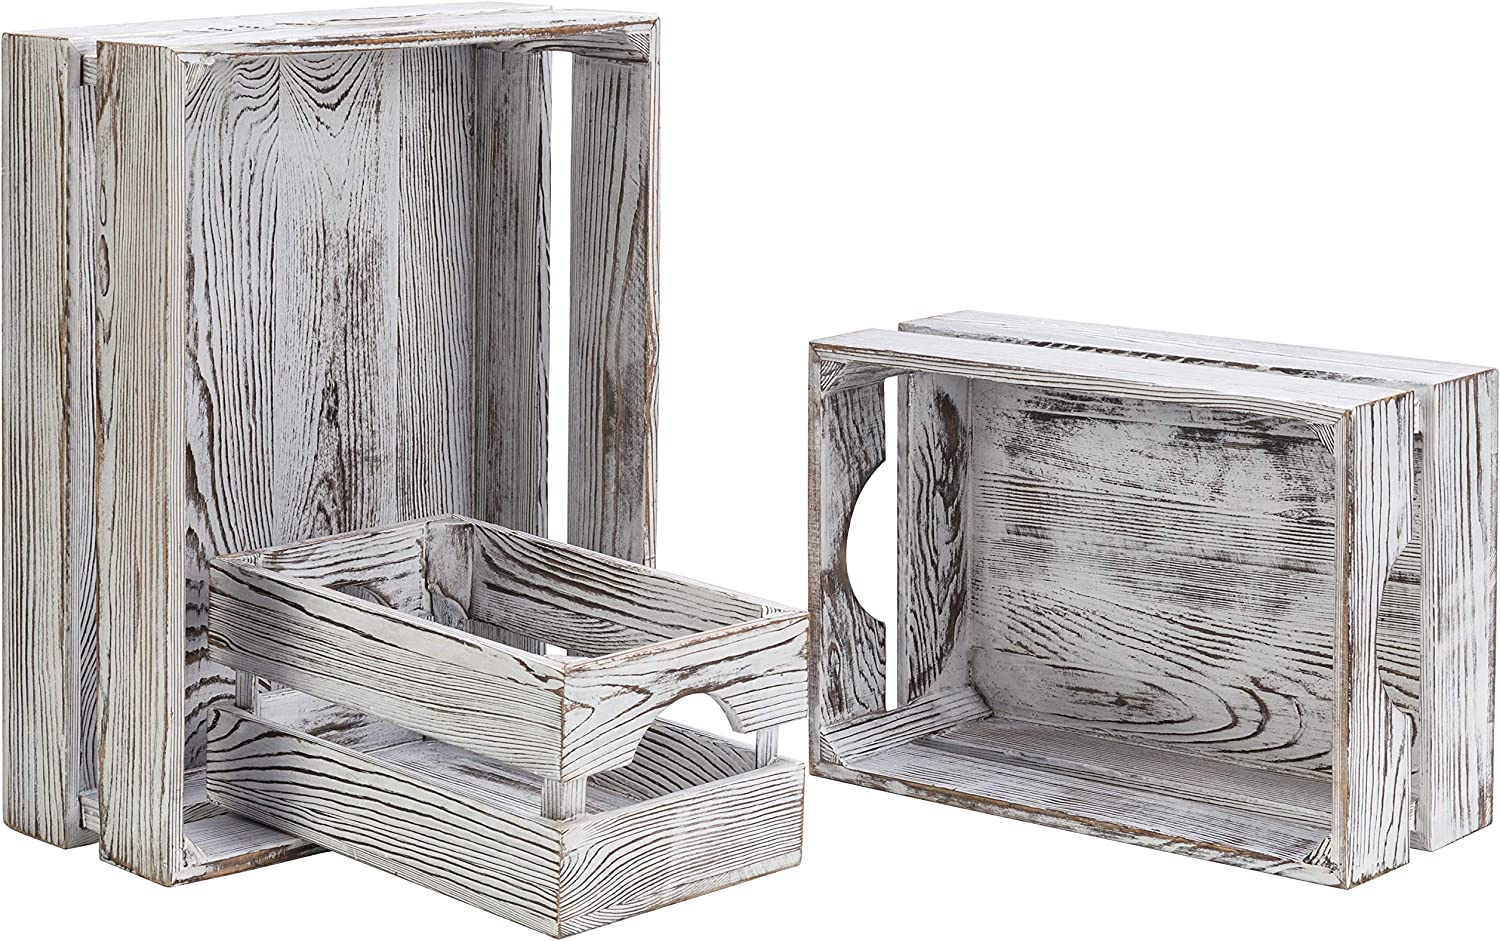 MyGift Vintage Whitewashed Wood Nesting Storage & Accent Boxes, Set of 3